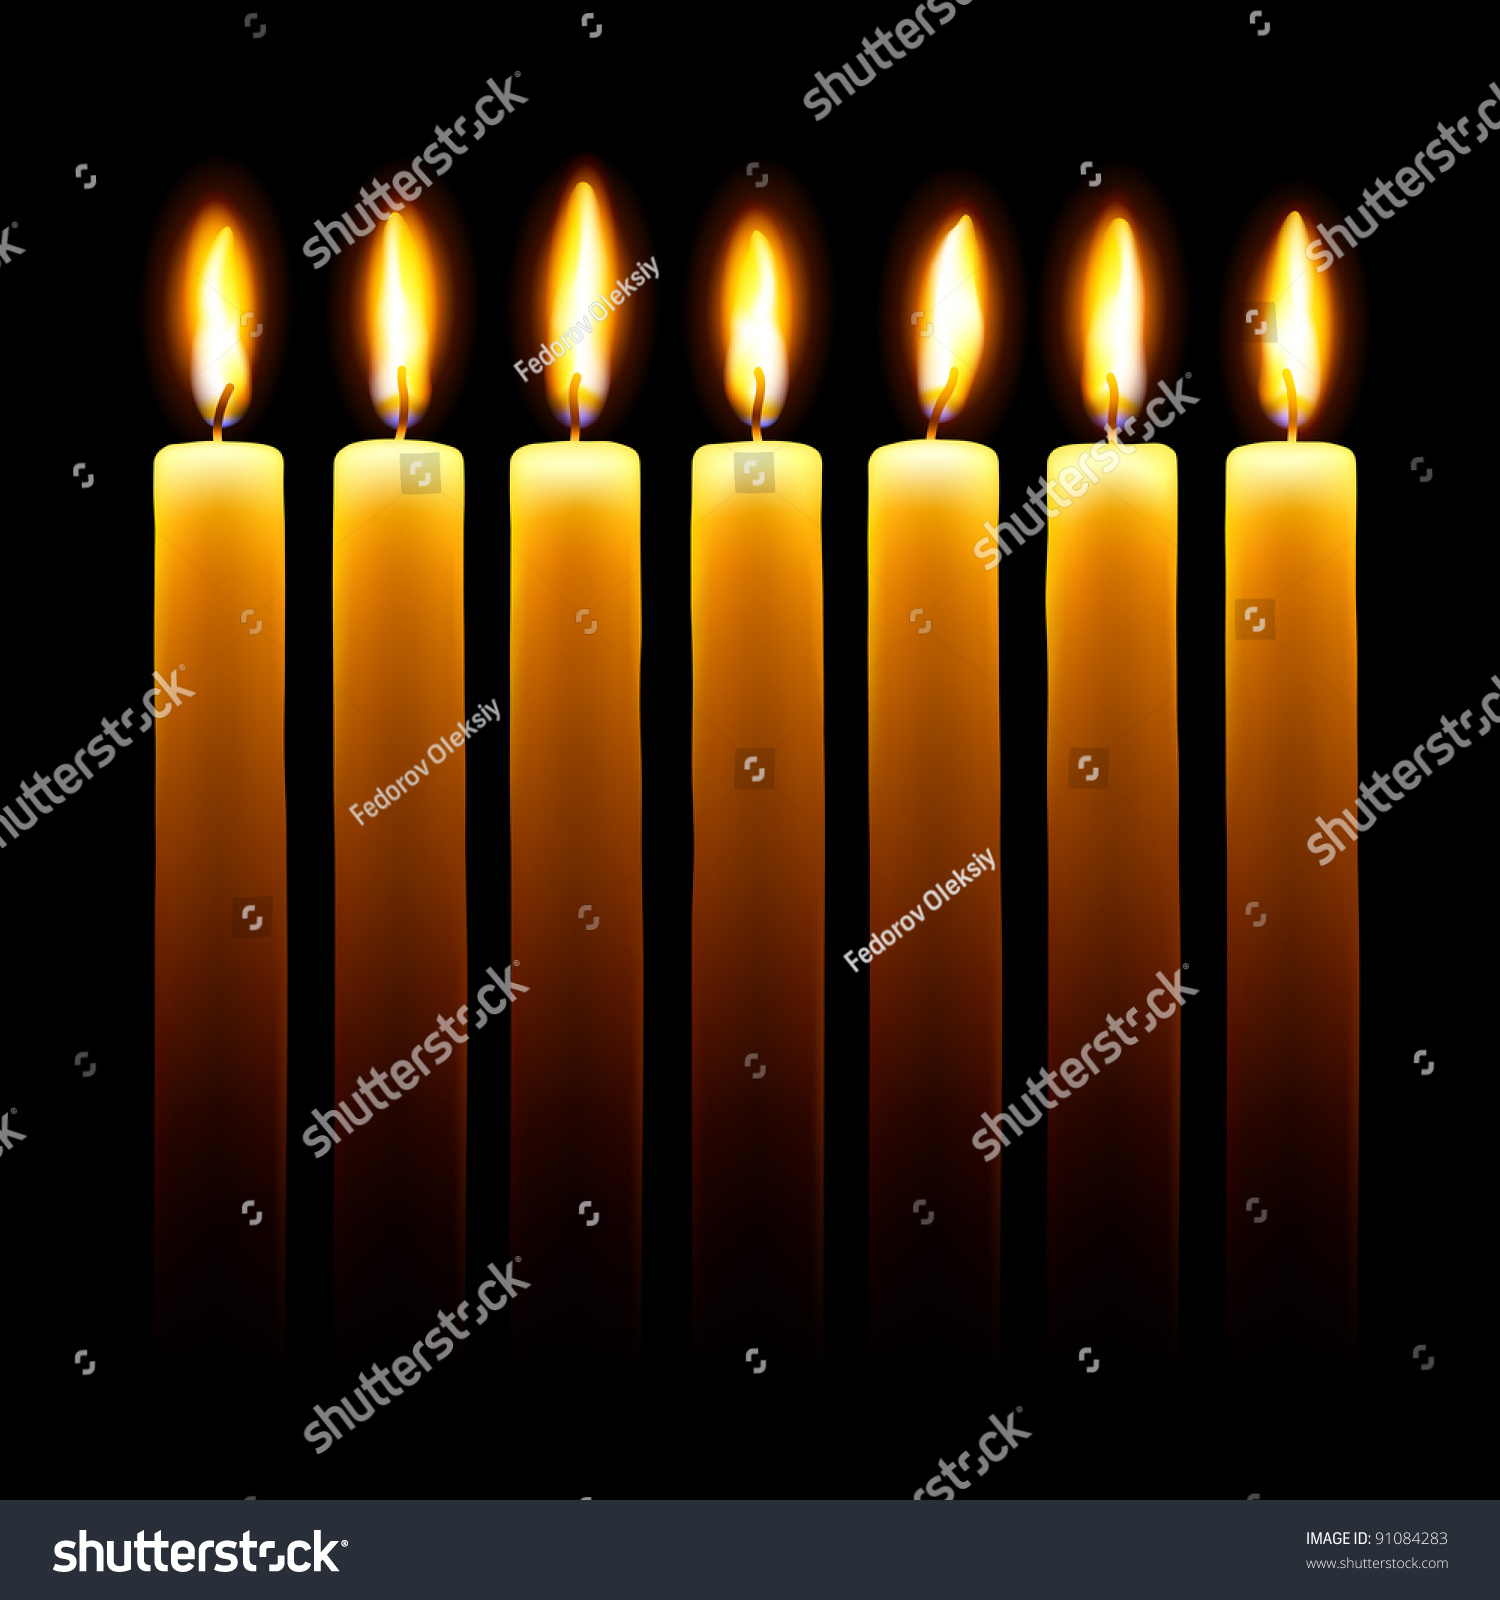 Burning Candles On Black Background. Stock Vector ...